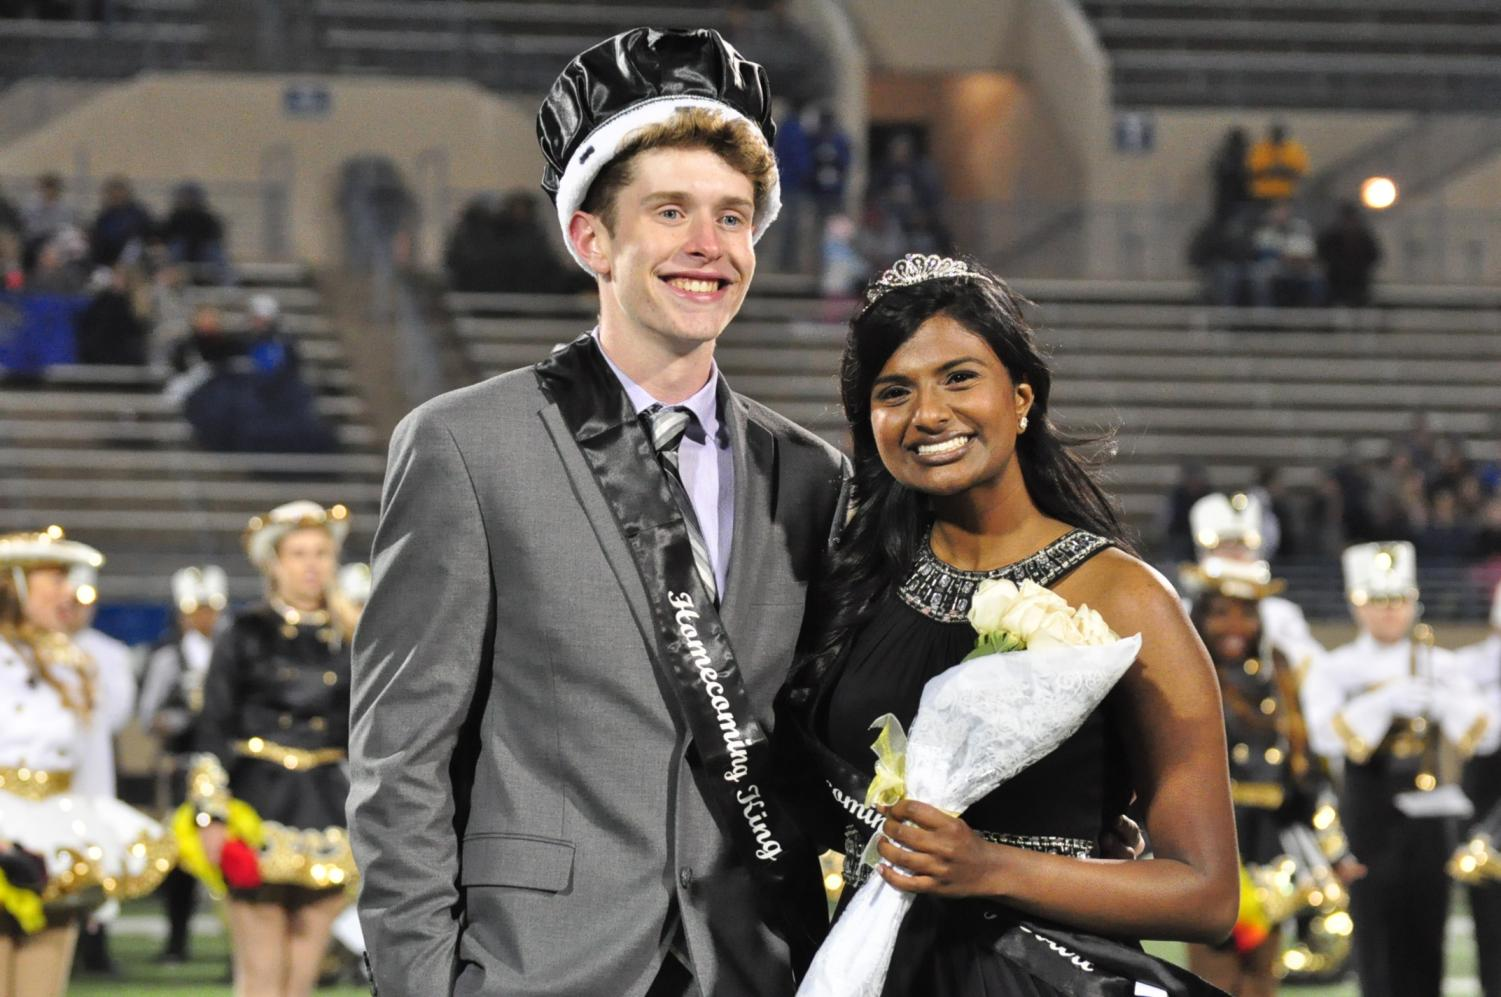 Aswathi Thomas and Jacob Garvin were annouced as the Homecoming Queen and King at the Homecoming Game on Friday, Oct. 27 at Kimborough Stadium.